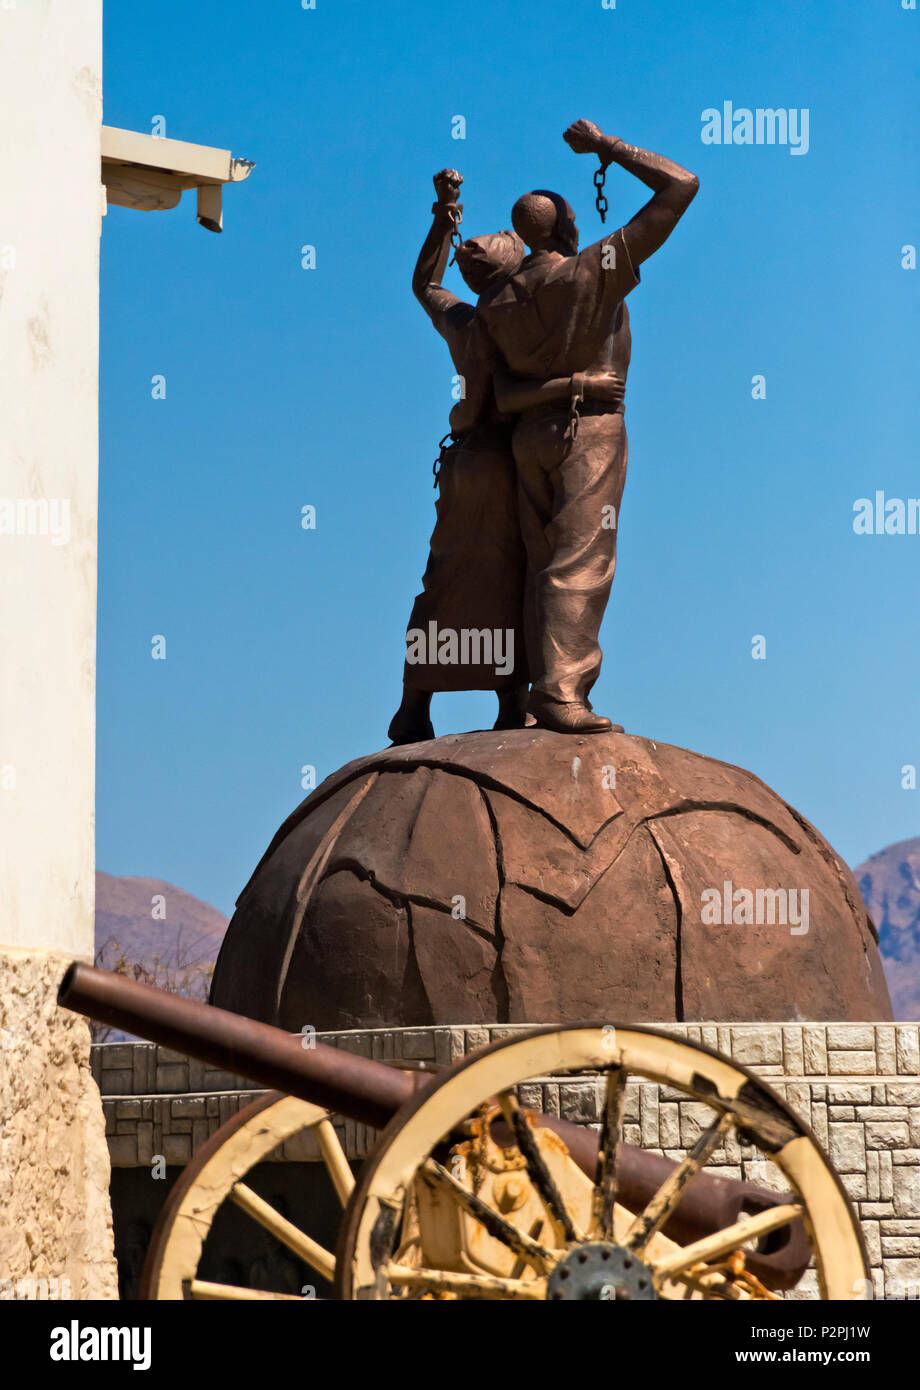 Statue in front of National Museum of Namibia, Windhoek, Khomas Region, Namibia - Stock Image